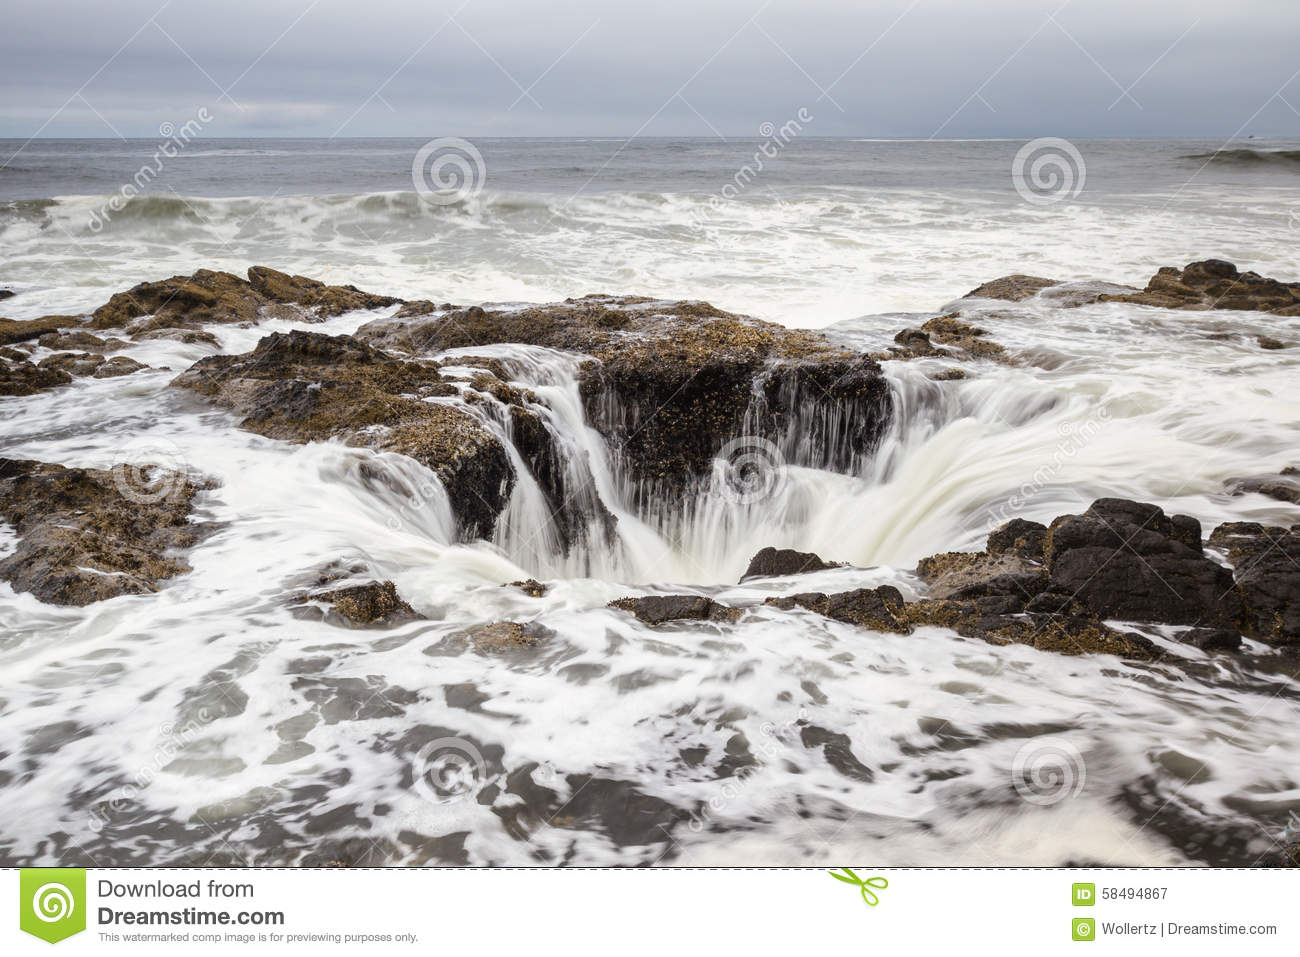 Thor's Well clipart #10, Download drawings